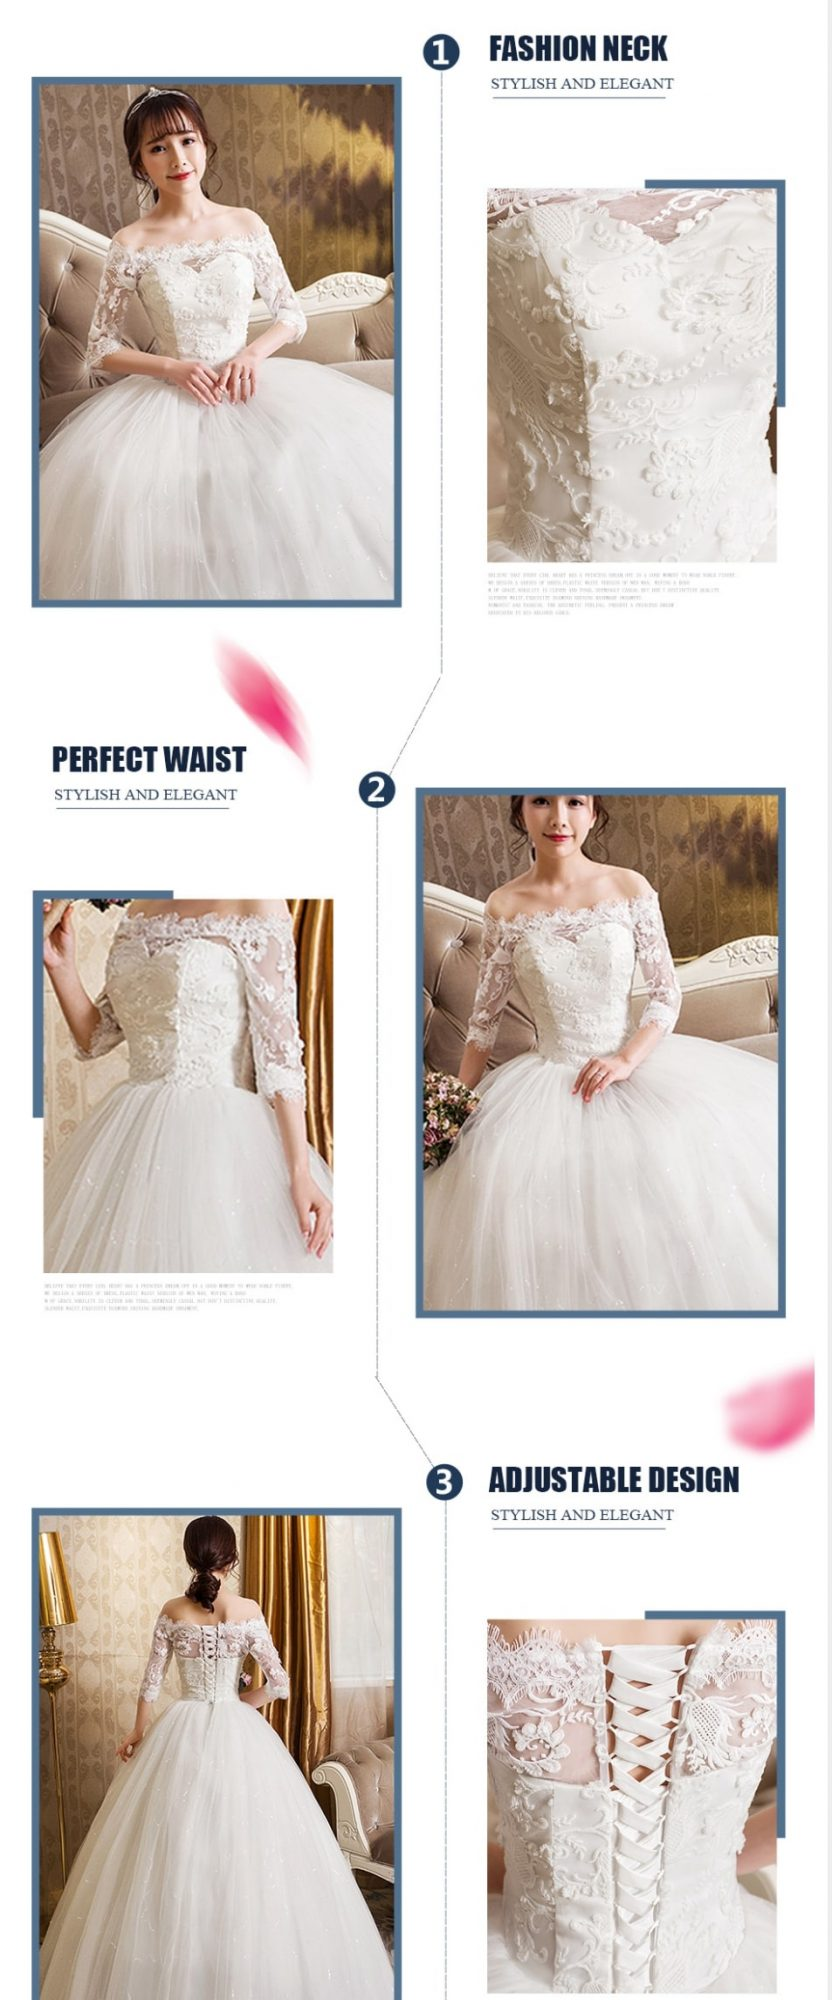 off the shoulder sleeved wedding dress description